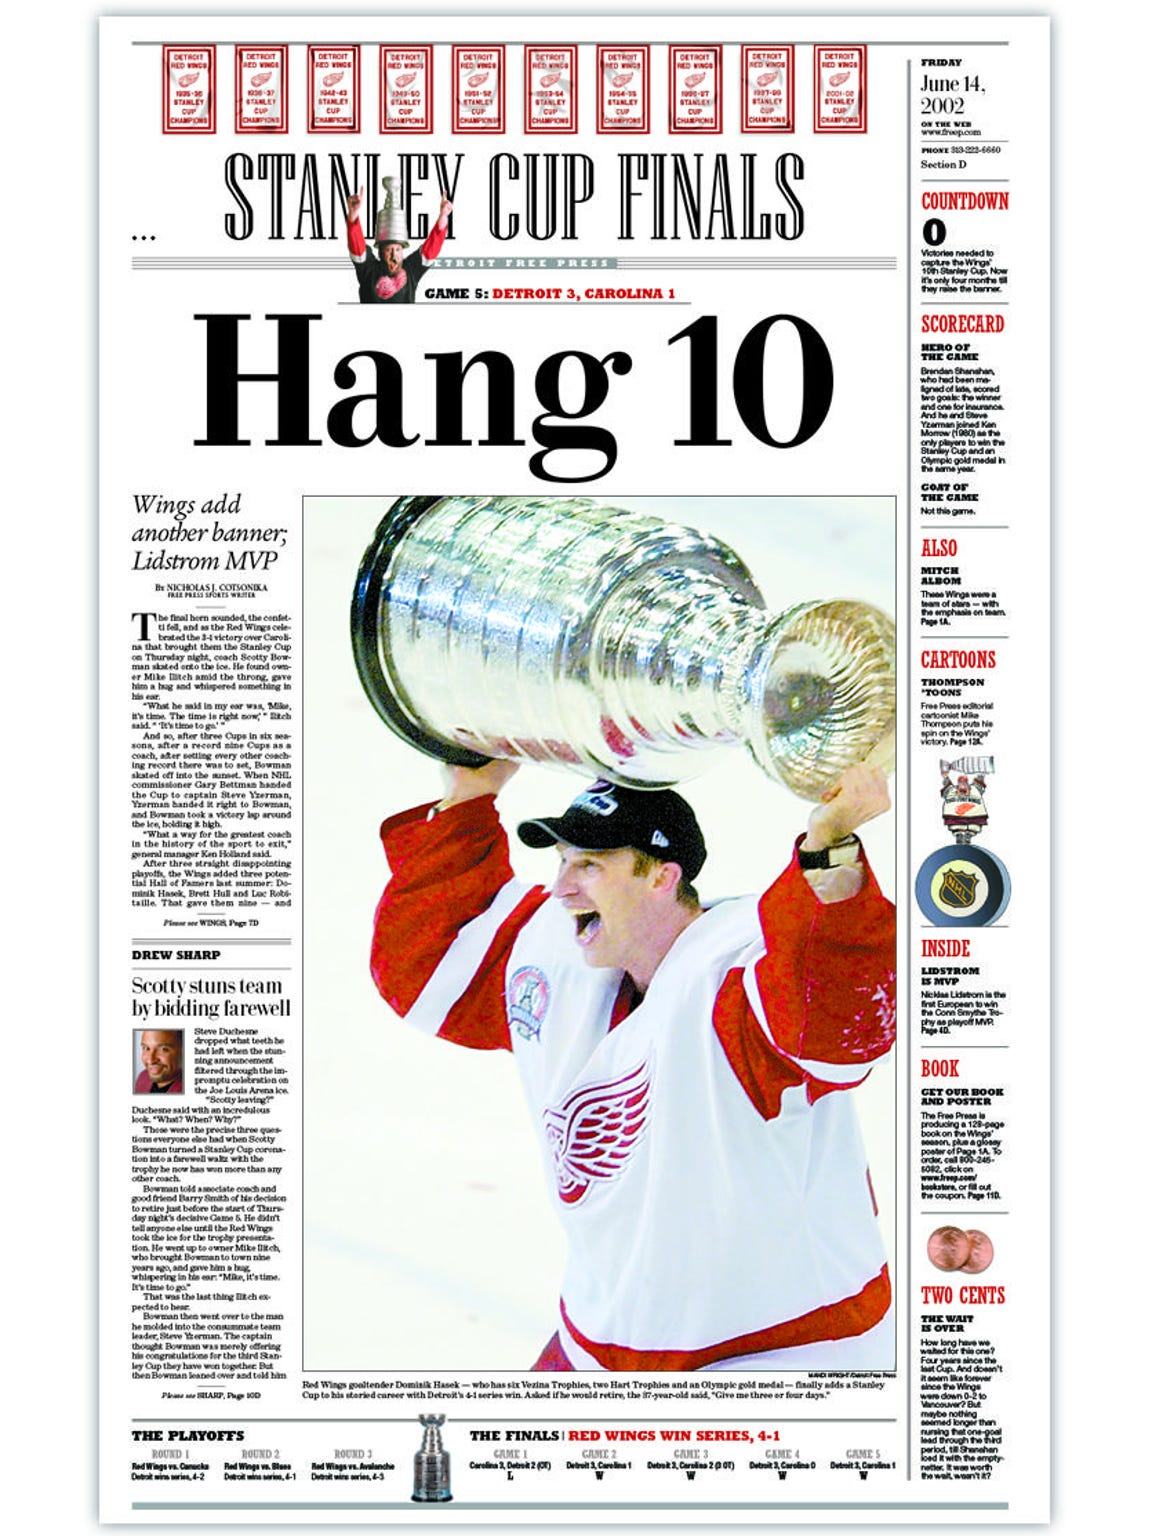 2002, Red Wings win Stanley Cup (this was sports section's